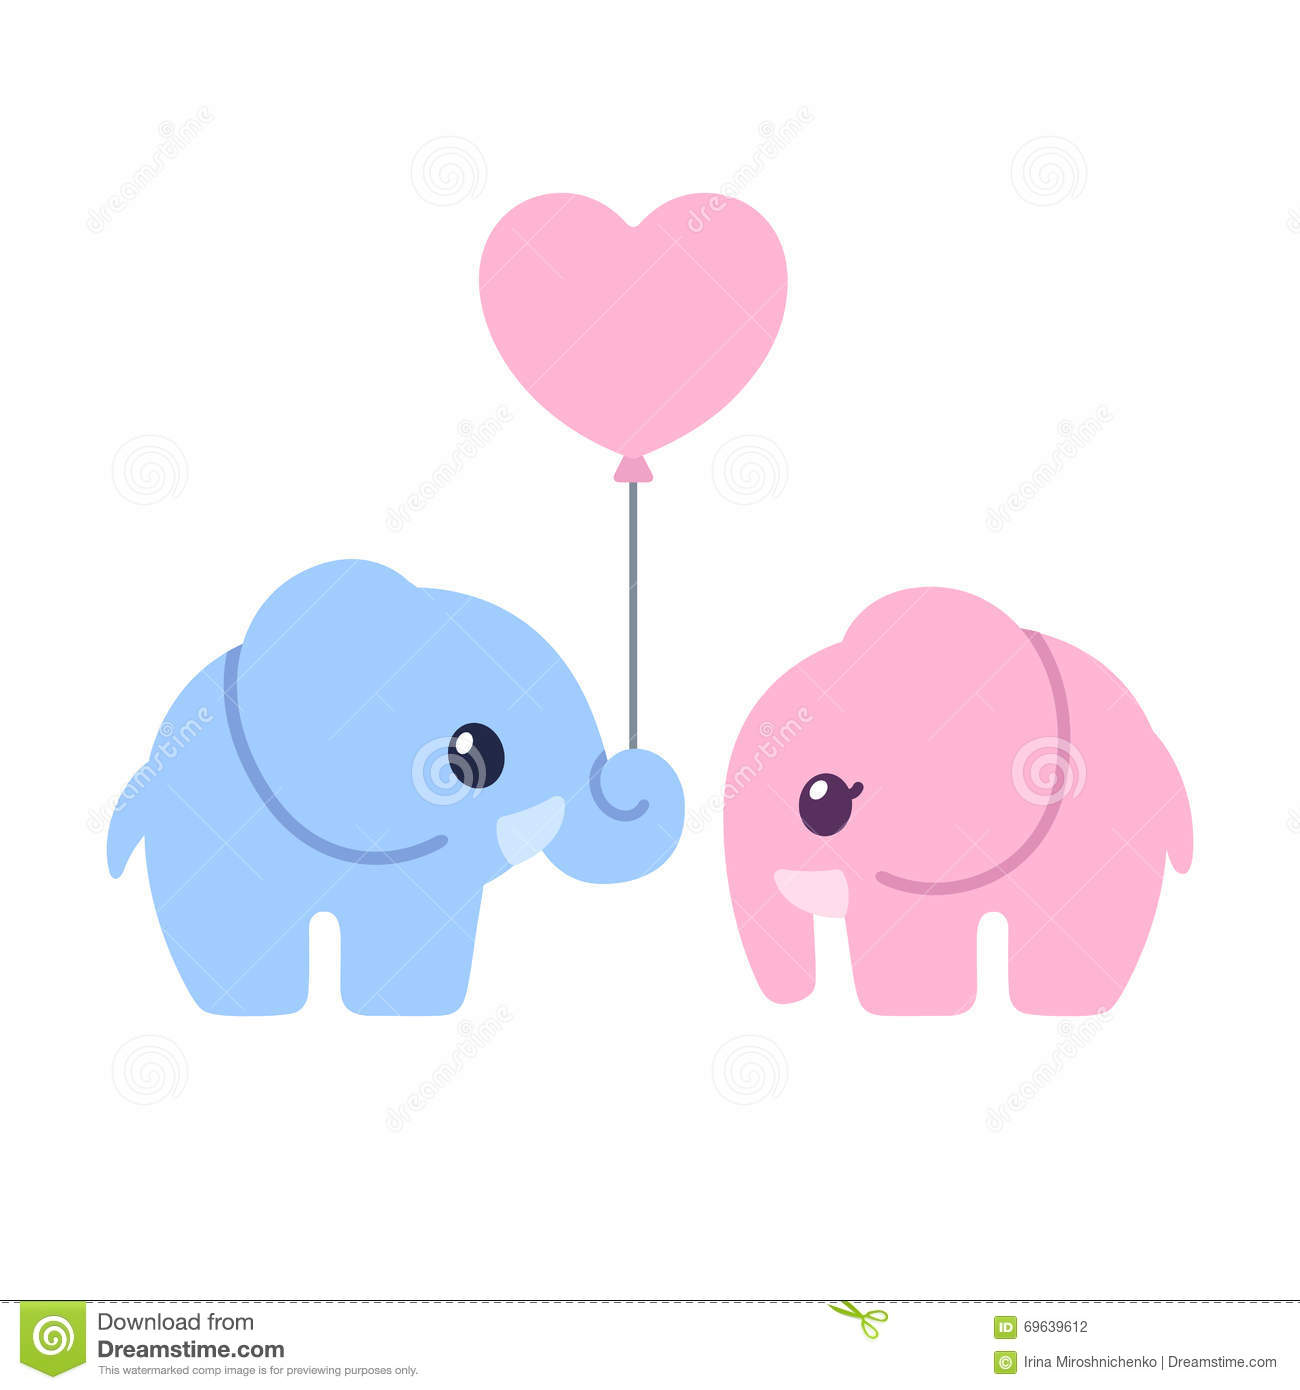 Cute Cartoon Elephant Couple Illustration 69639612 Megapixl